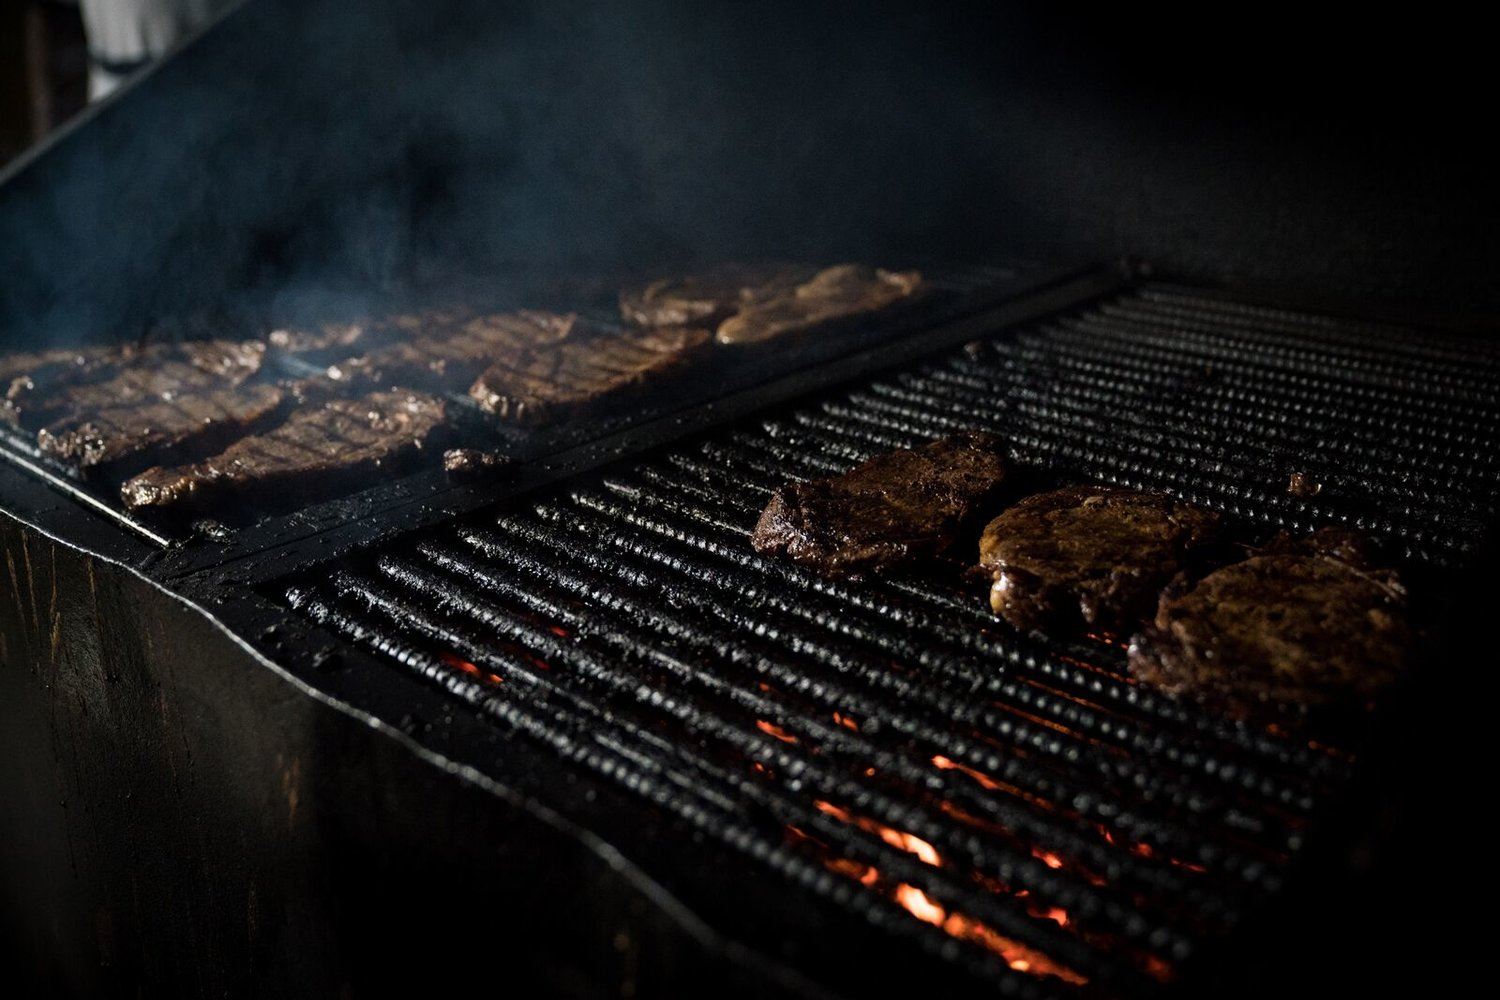 Steaks on the grill at Camp Morehead. Of all the places I have been in Afghanistan, Camp Morehead is by far my favorite. I hope to return someday.